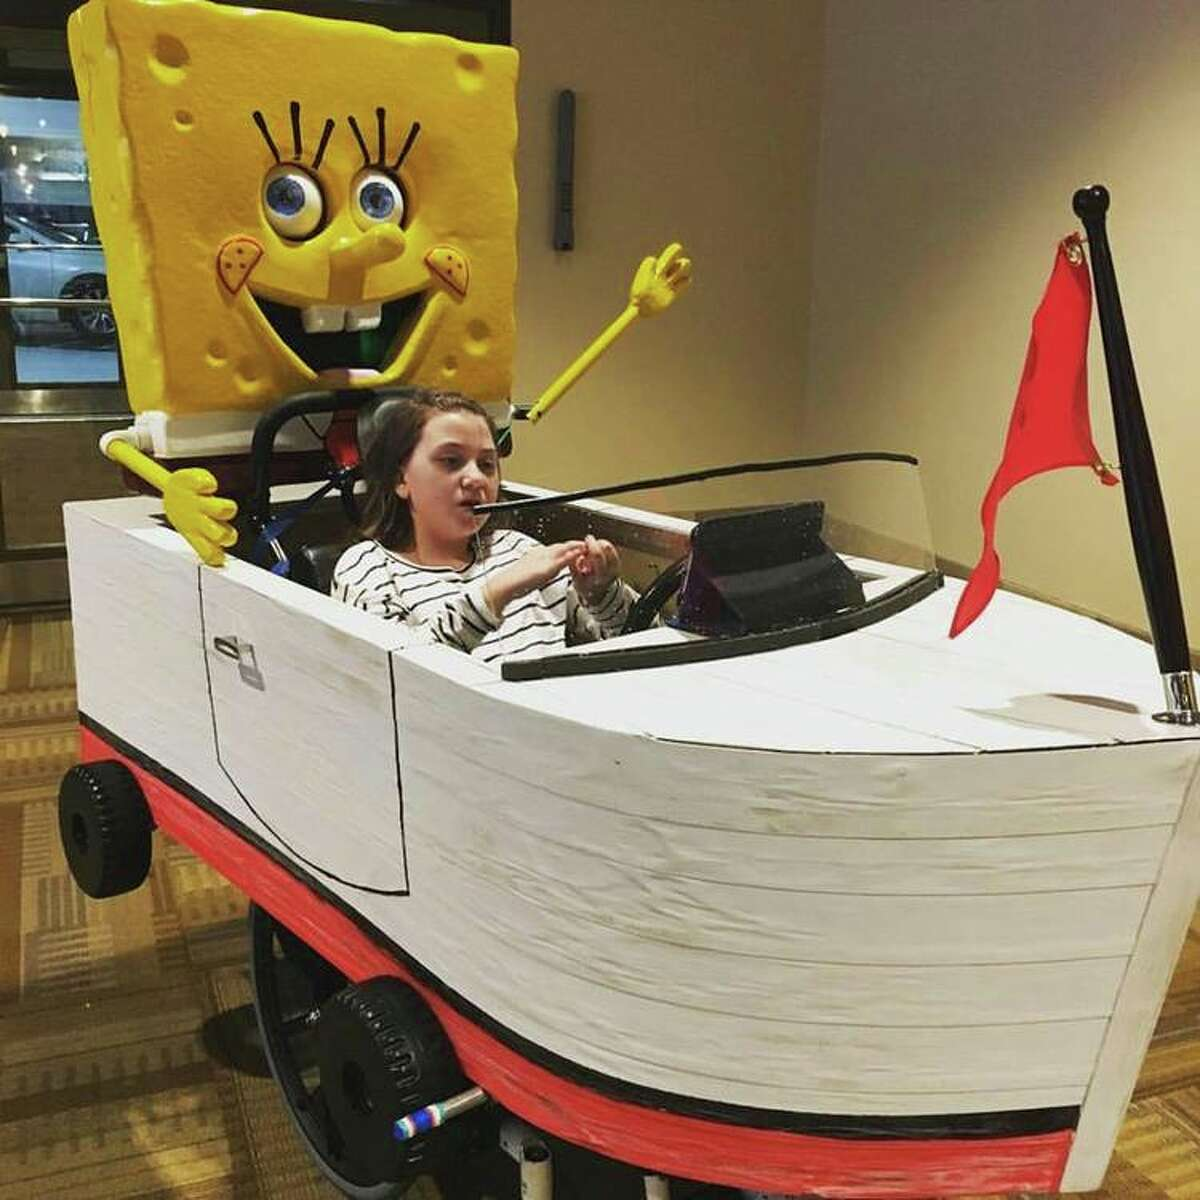 Ryan and Lana Weimer, founders of Magic Wheelchair, partner with various organizations to create epic Halloween costumes for children in wheelchairs.